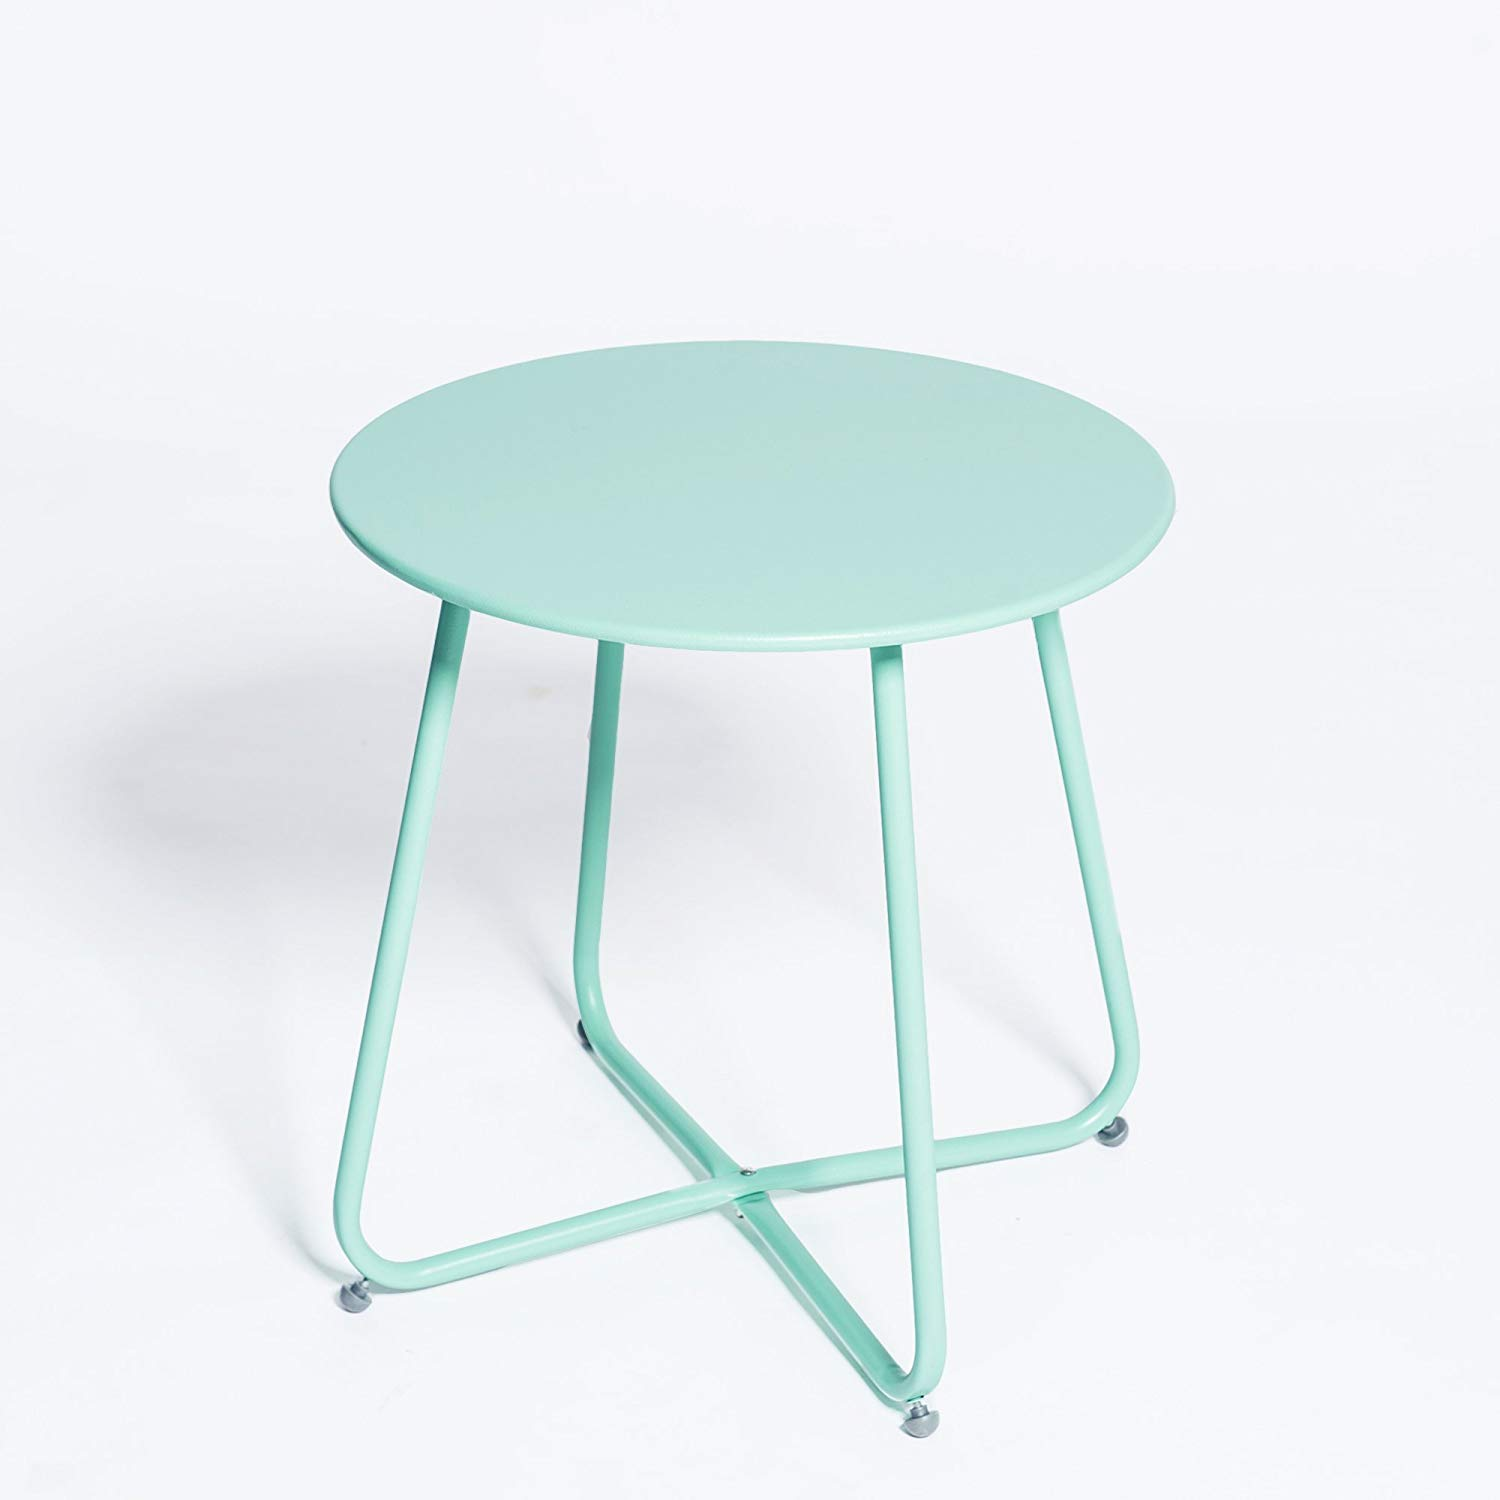 grand live steel small round bistro side table outdoor metal indoor ott tray snack coffee anti rusty light blue green glass and tables with wheels tool storage sequin tablecloth